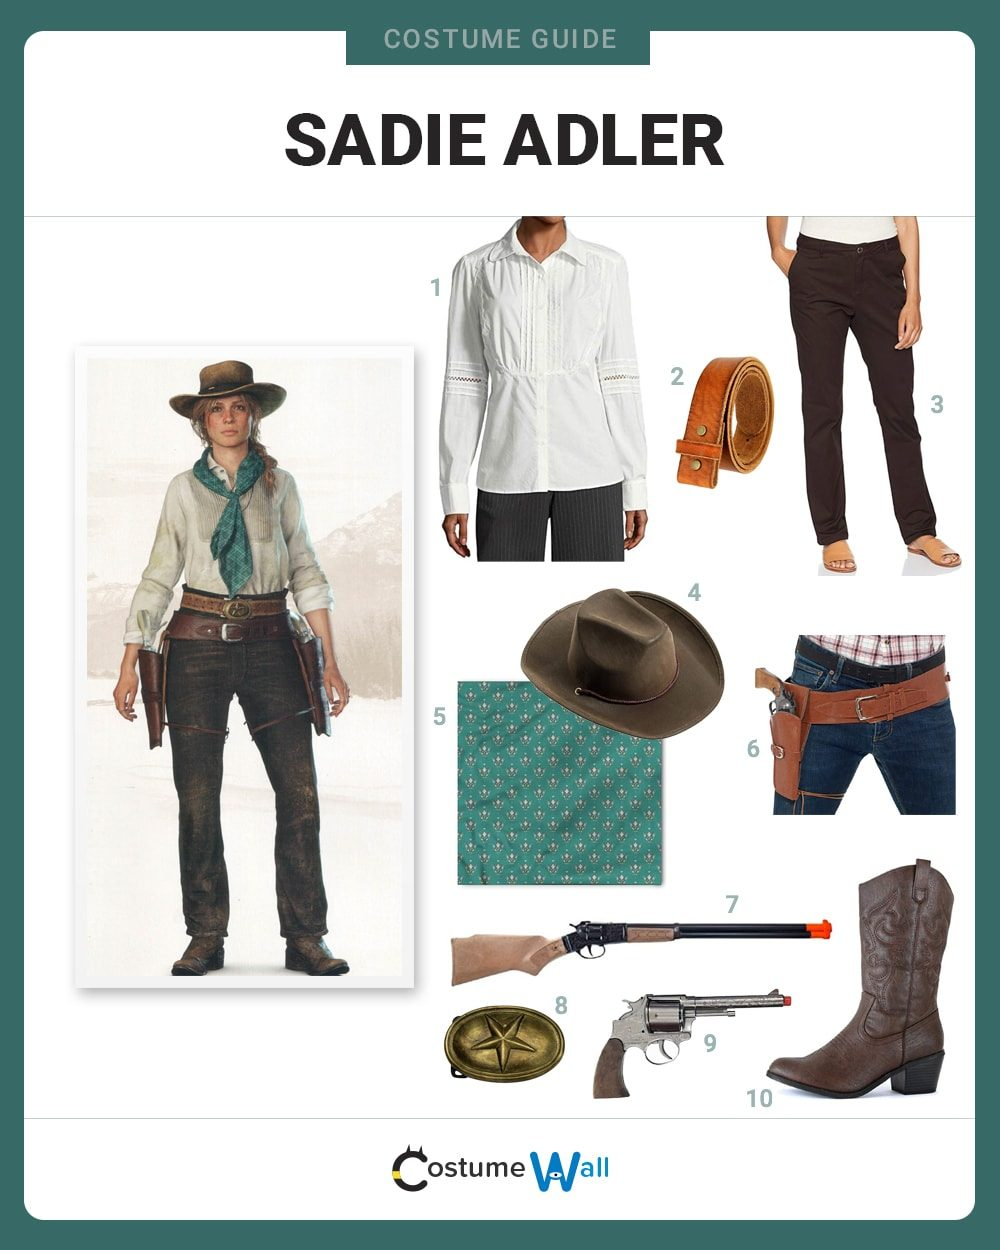 Sadie Adler Costume Guide